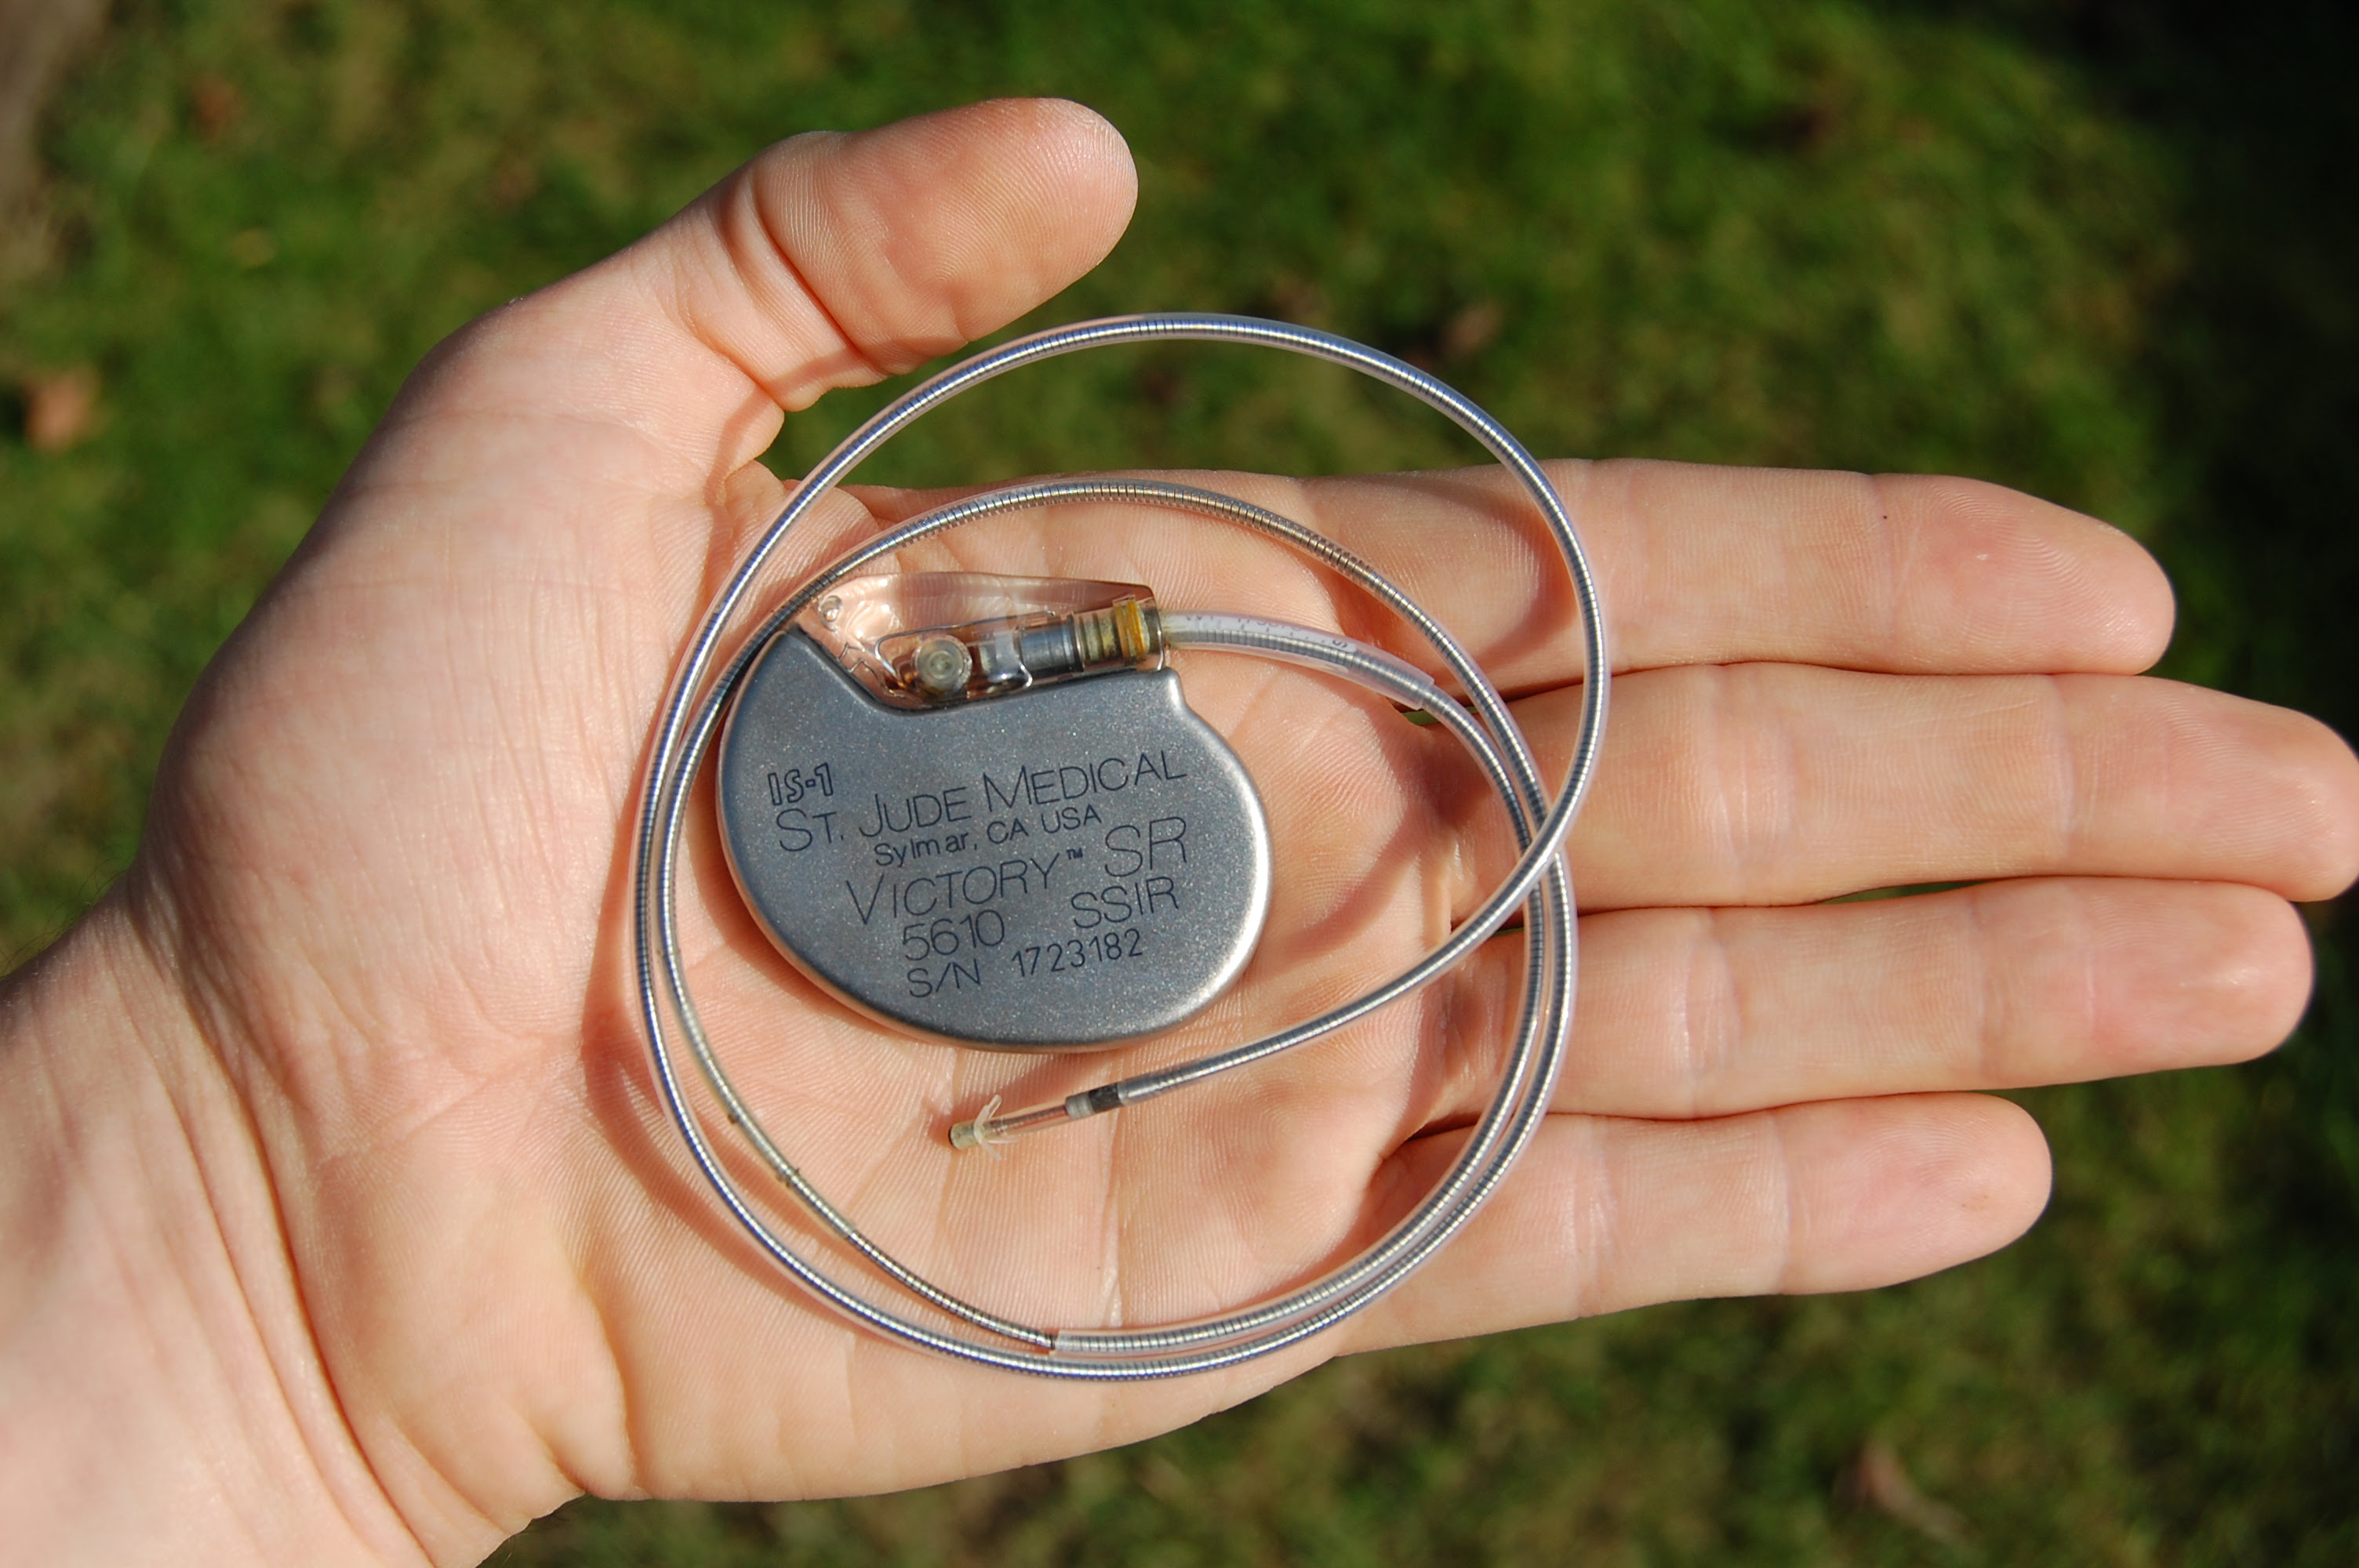 http://upload.wikimedia.org/wikipedia/commons/8/82/St_Jude_Medical_pacemaker_in_hand.jpg